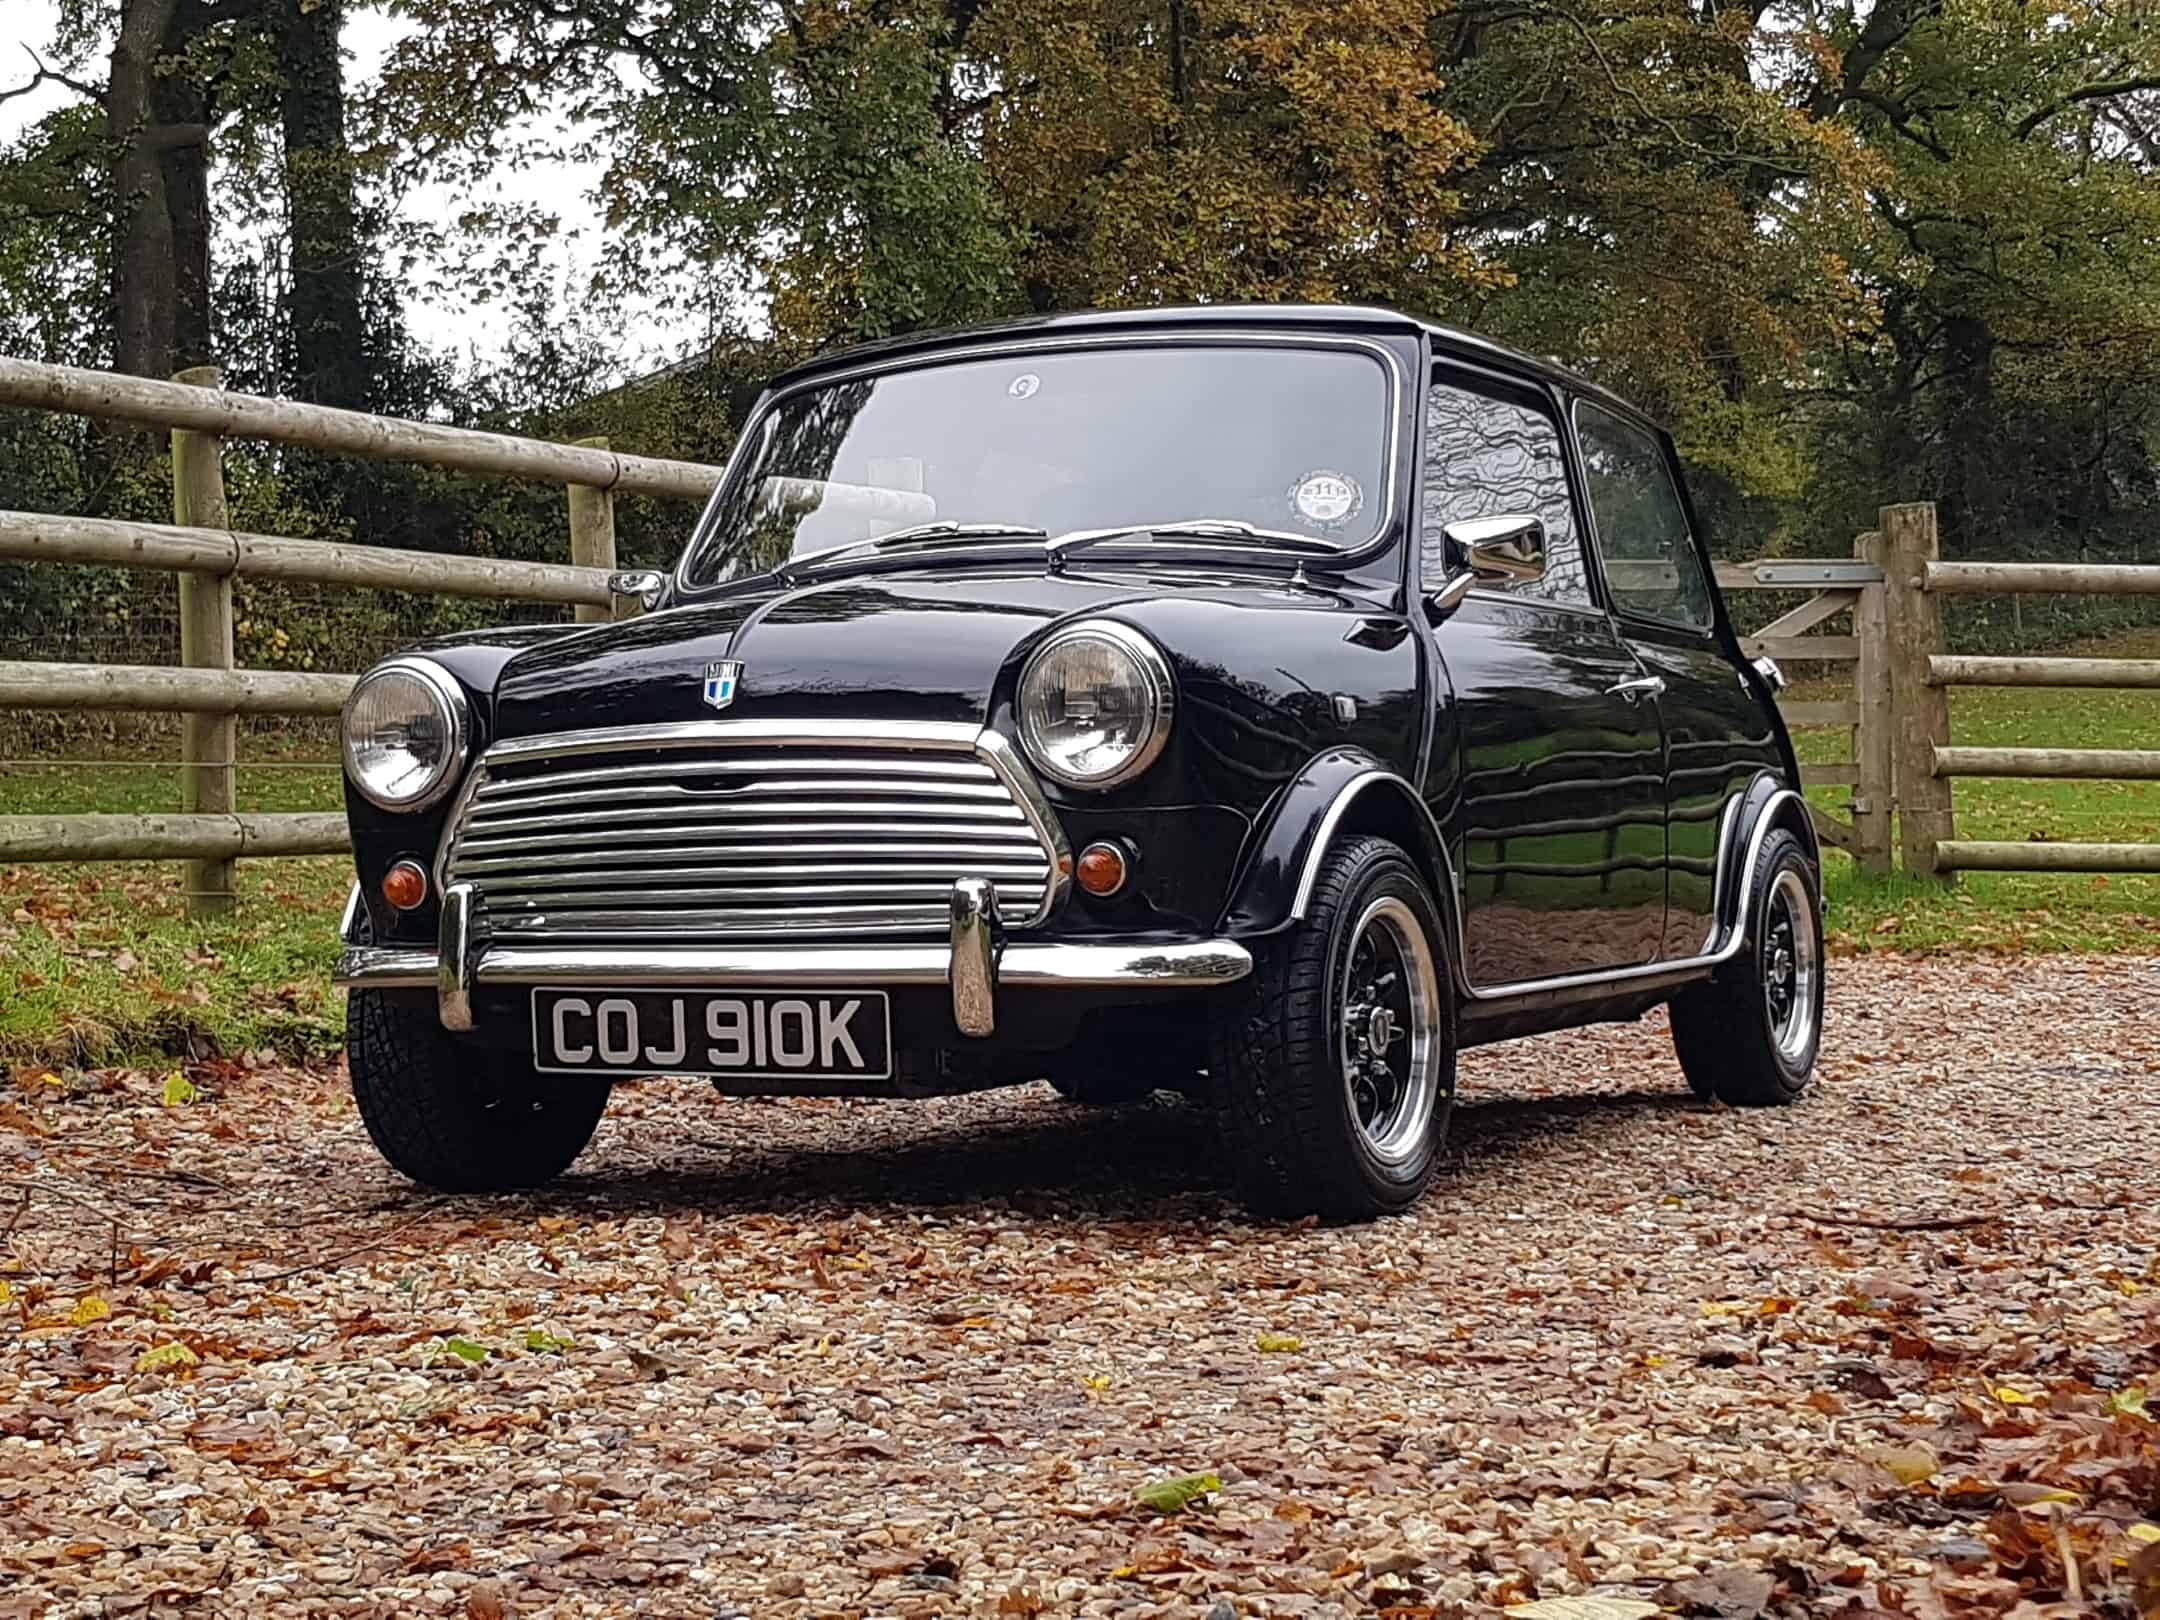 ** NOW SOLD ** 1972 Austin Mini 1310 cc Fast Road On Heritage Body Shell.